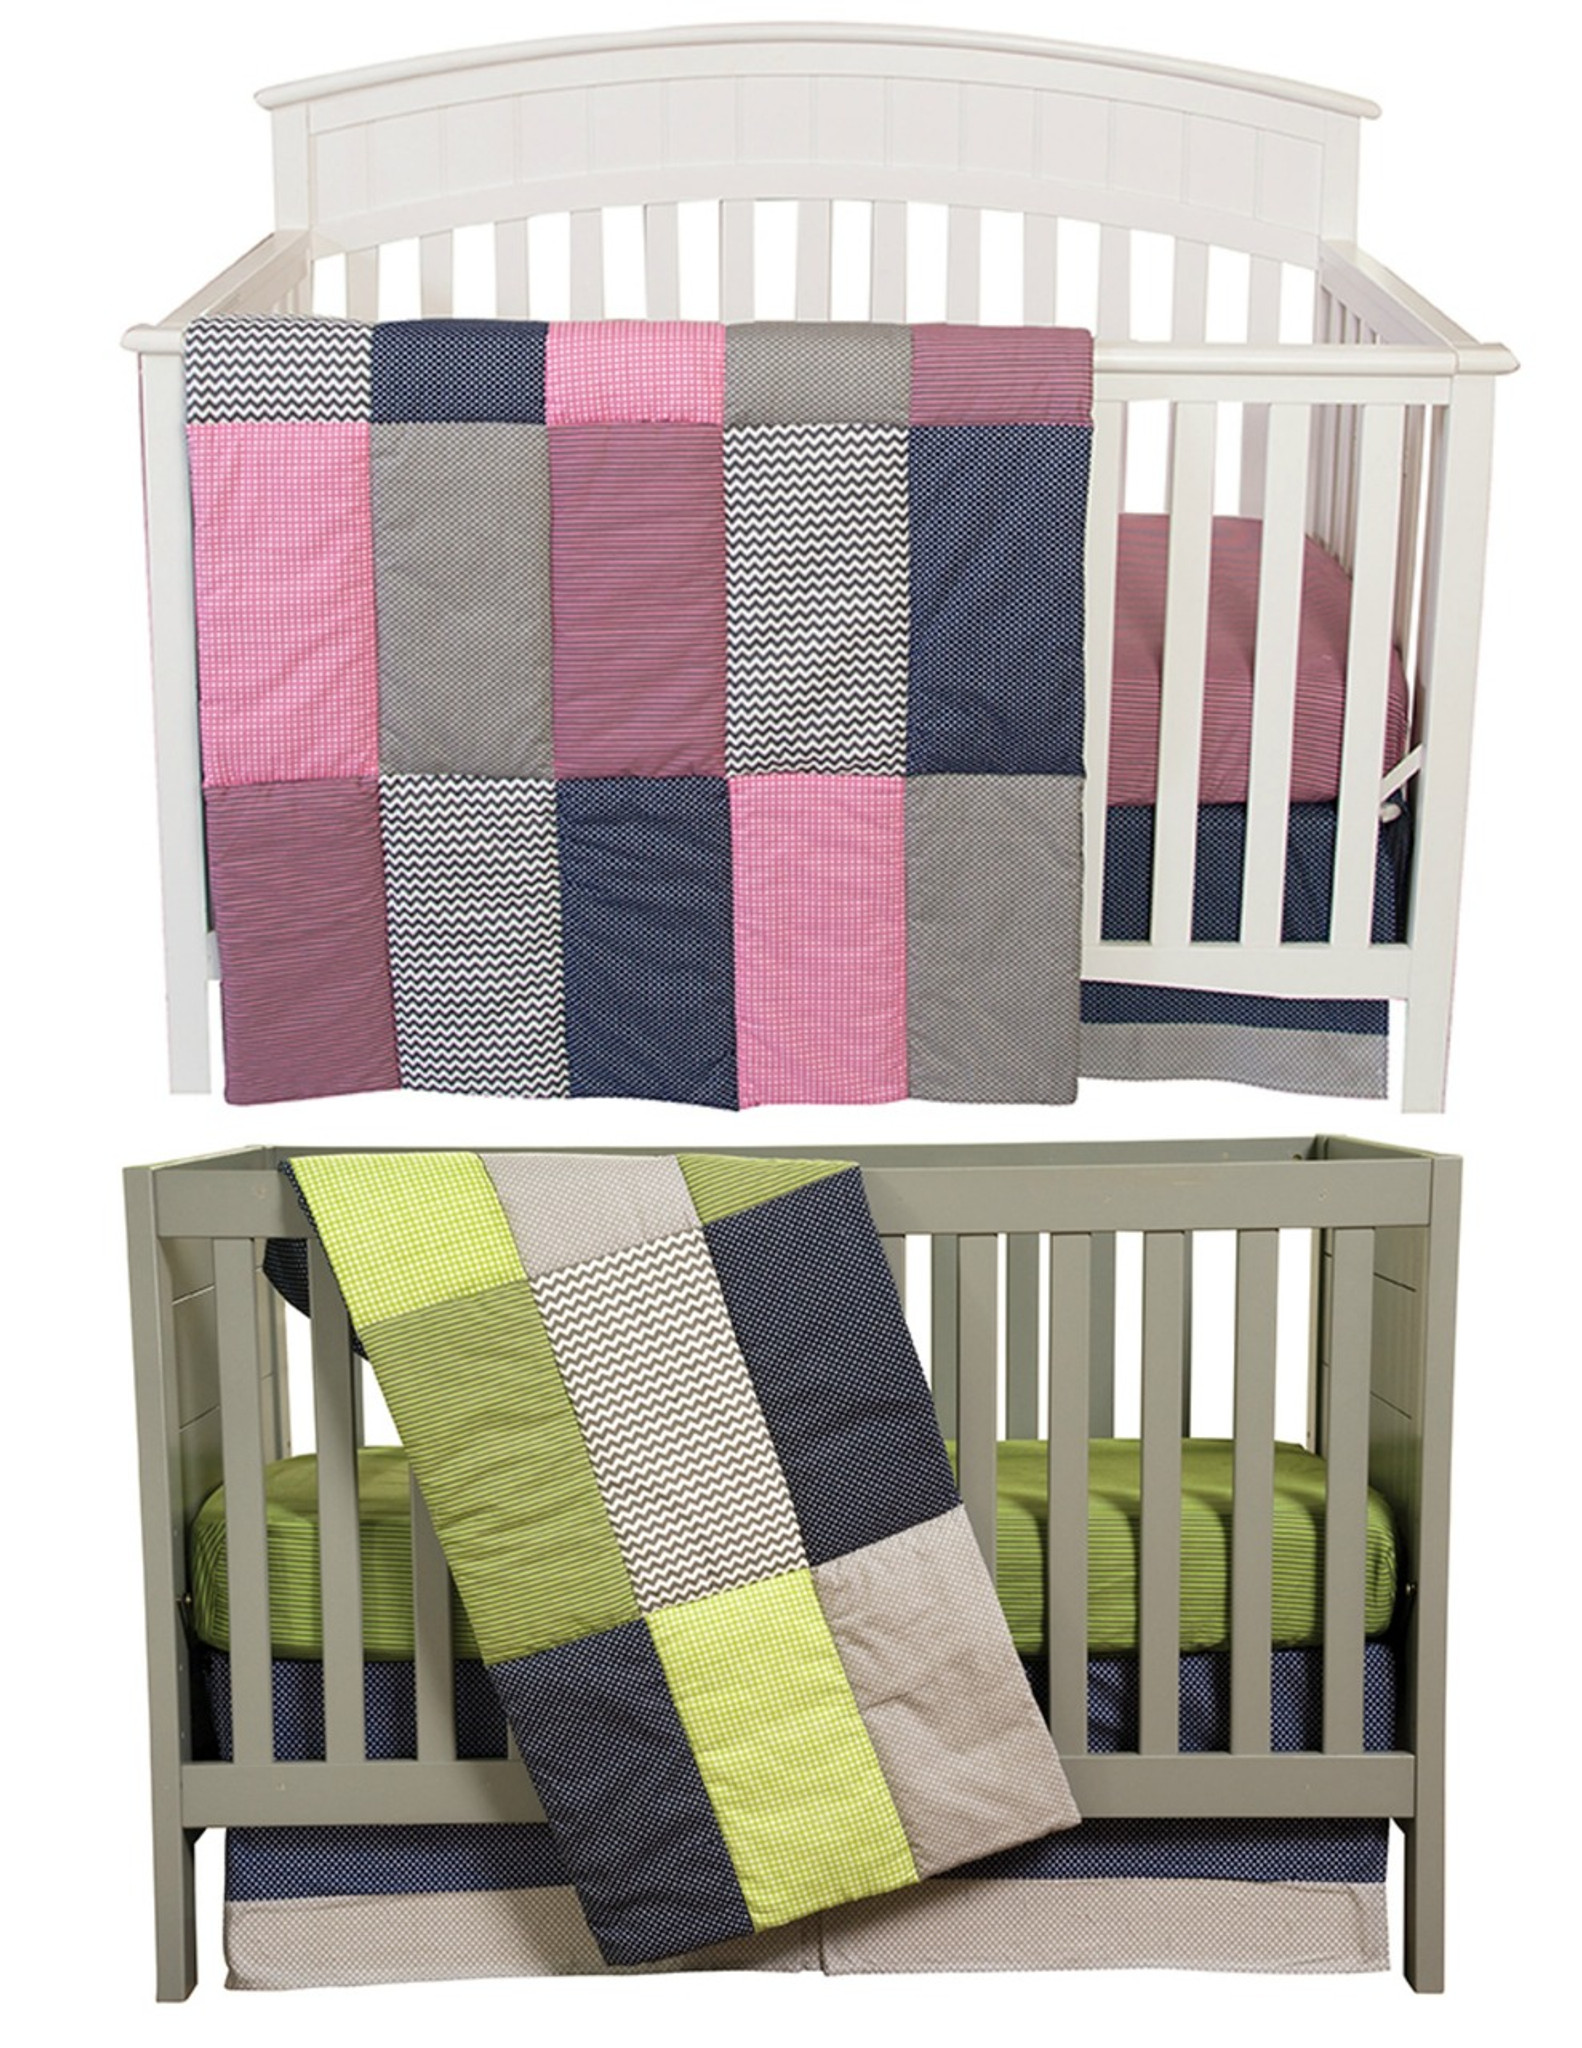 Baby bed twins - Pink And Green Matching Baby Bedding Set For Twins